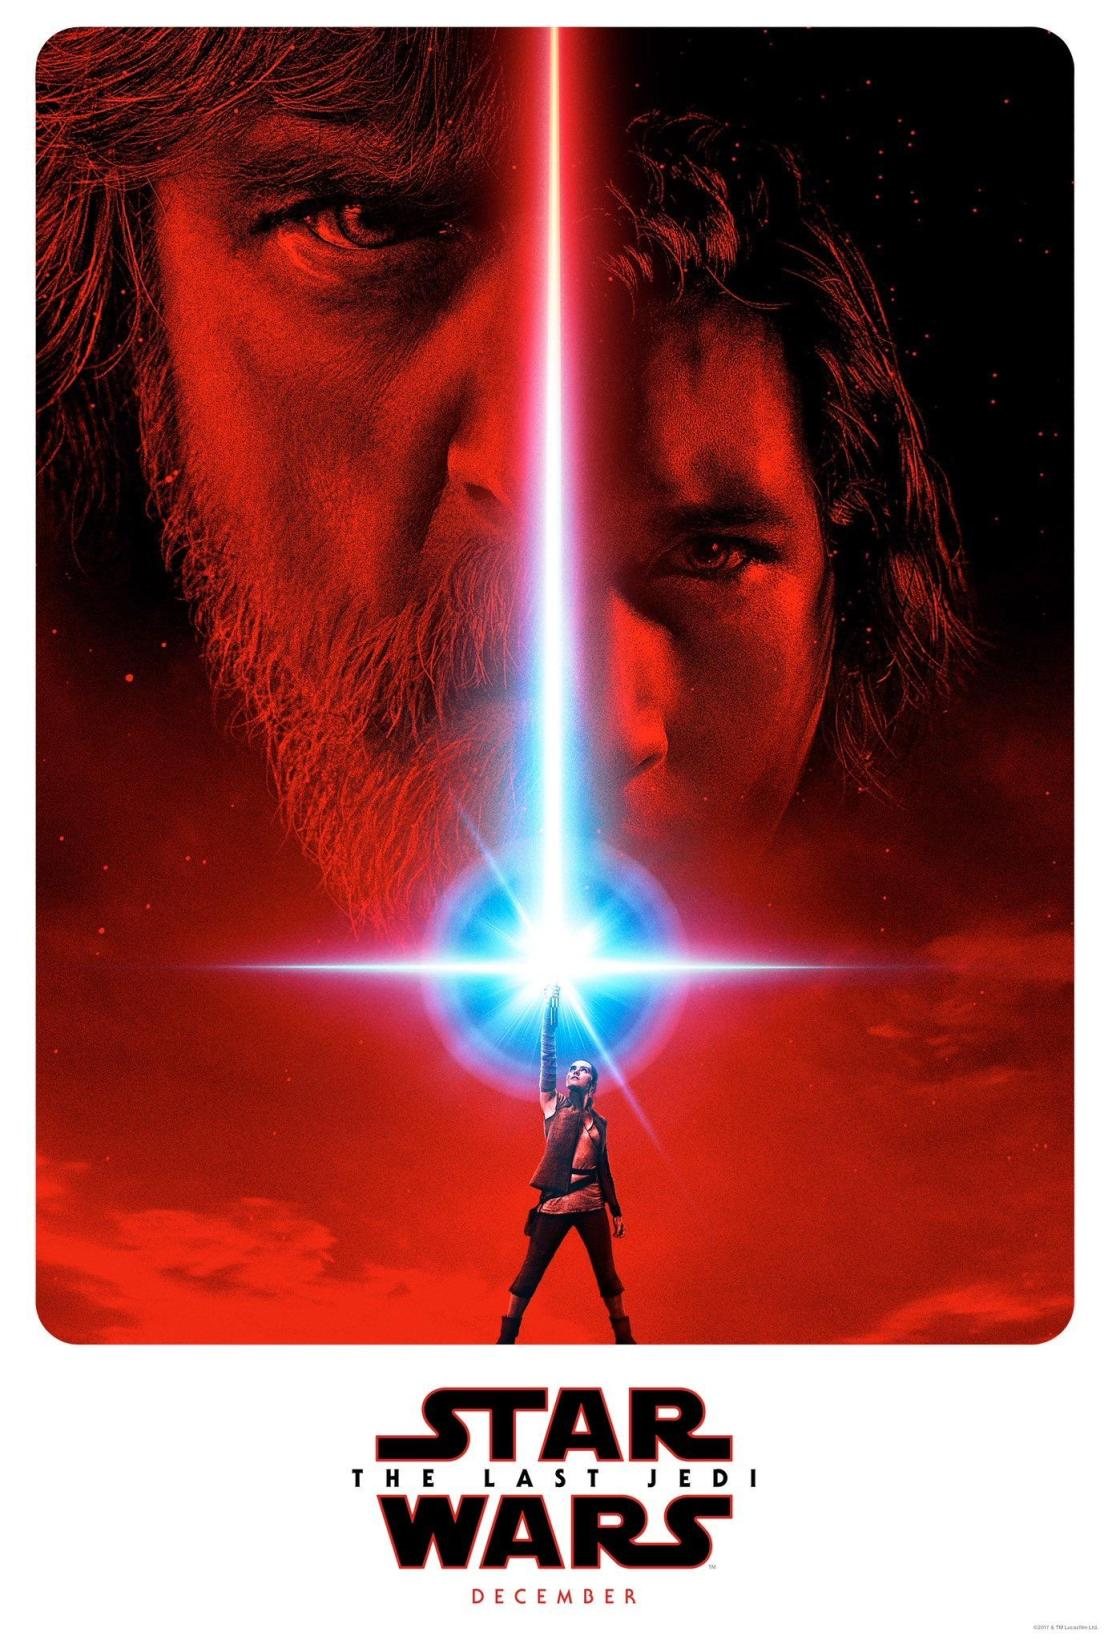 Star Wars The Last Jedi (2017) [1383 x 2048].jpg